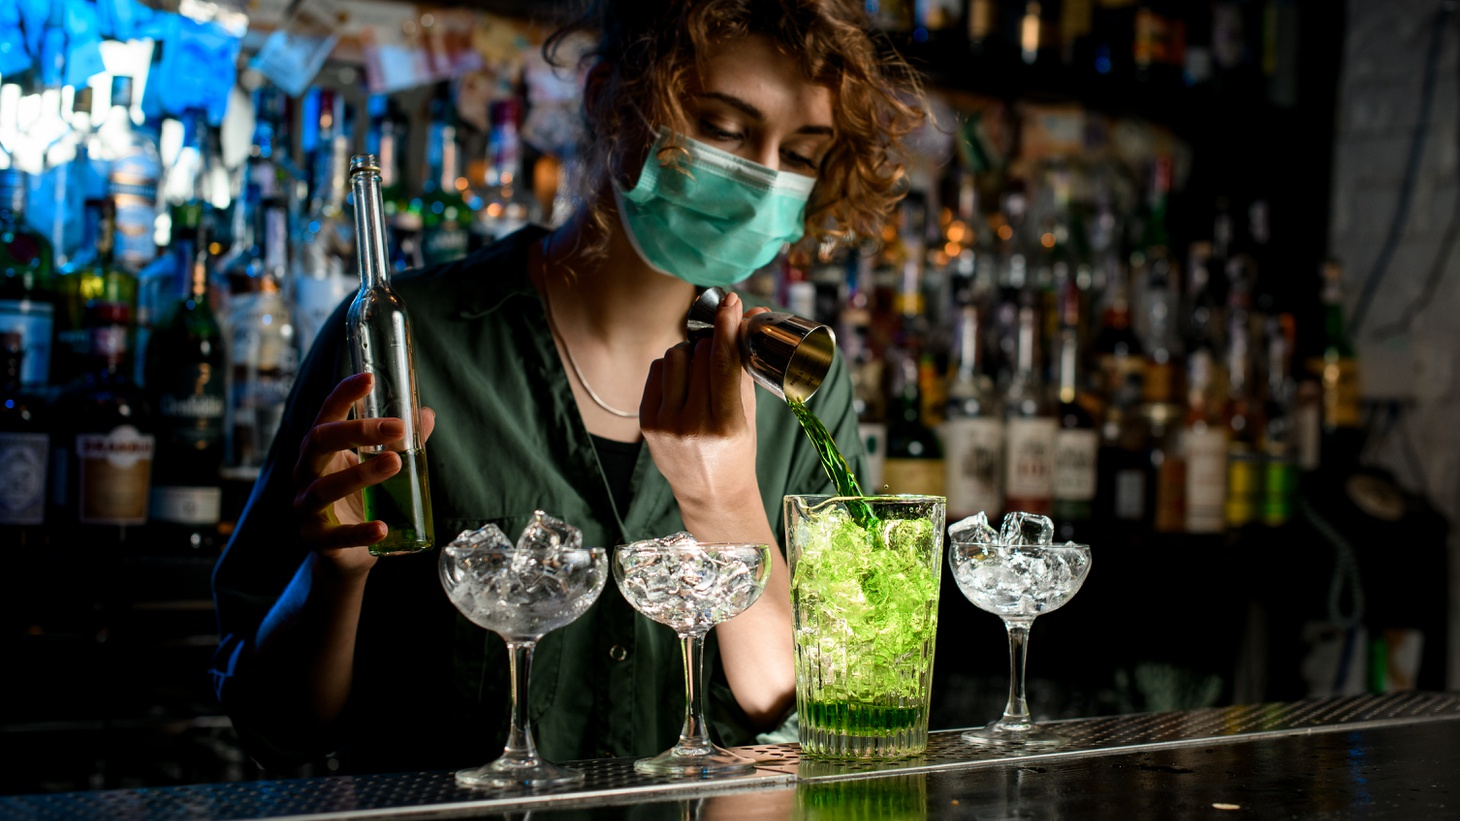 Workers and customers of LA bars, wine bars, breweries, lounges, and nightclubs must show proof of at least one COVID-19 shot starting October 7.